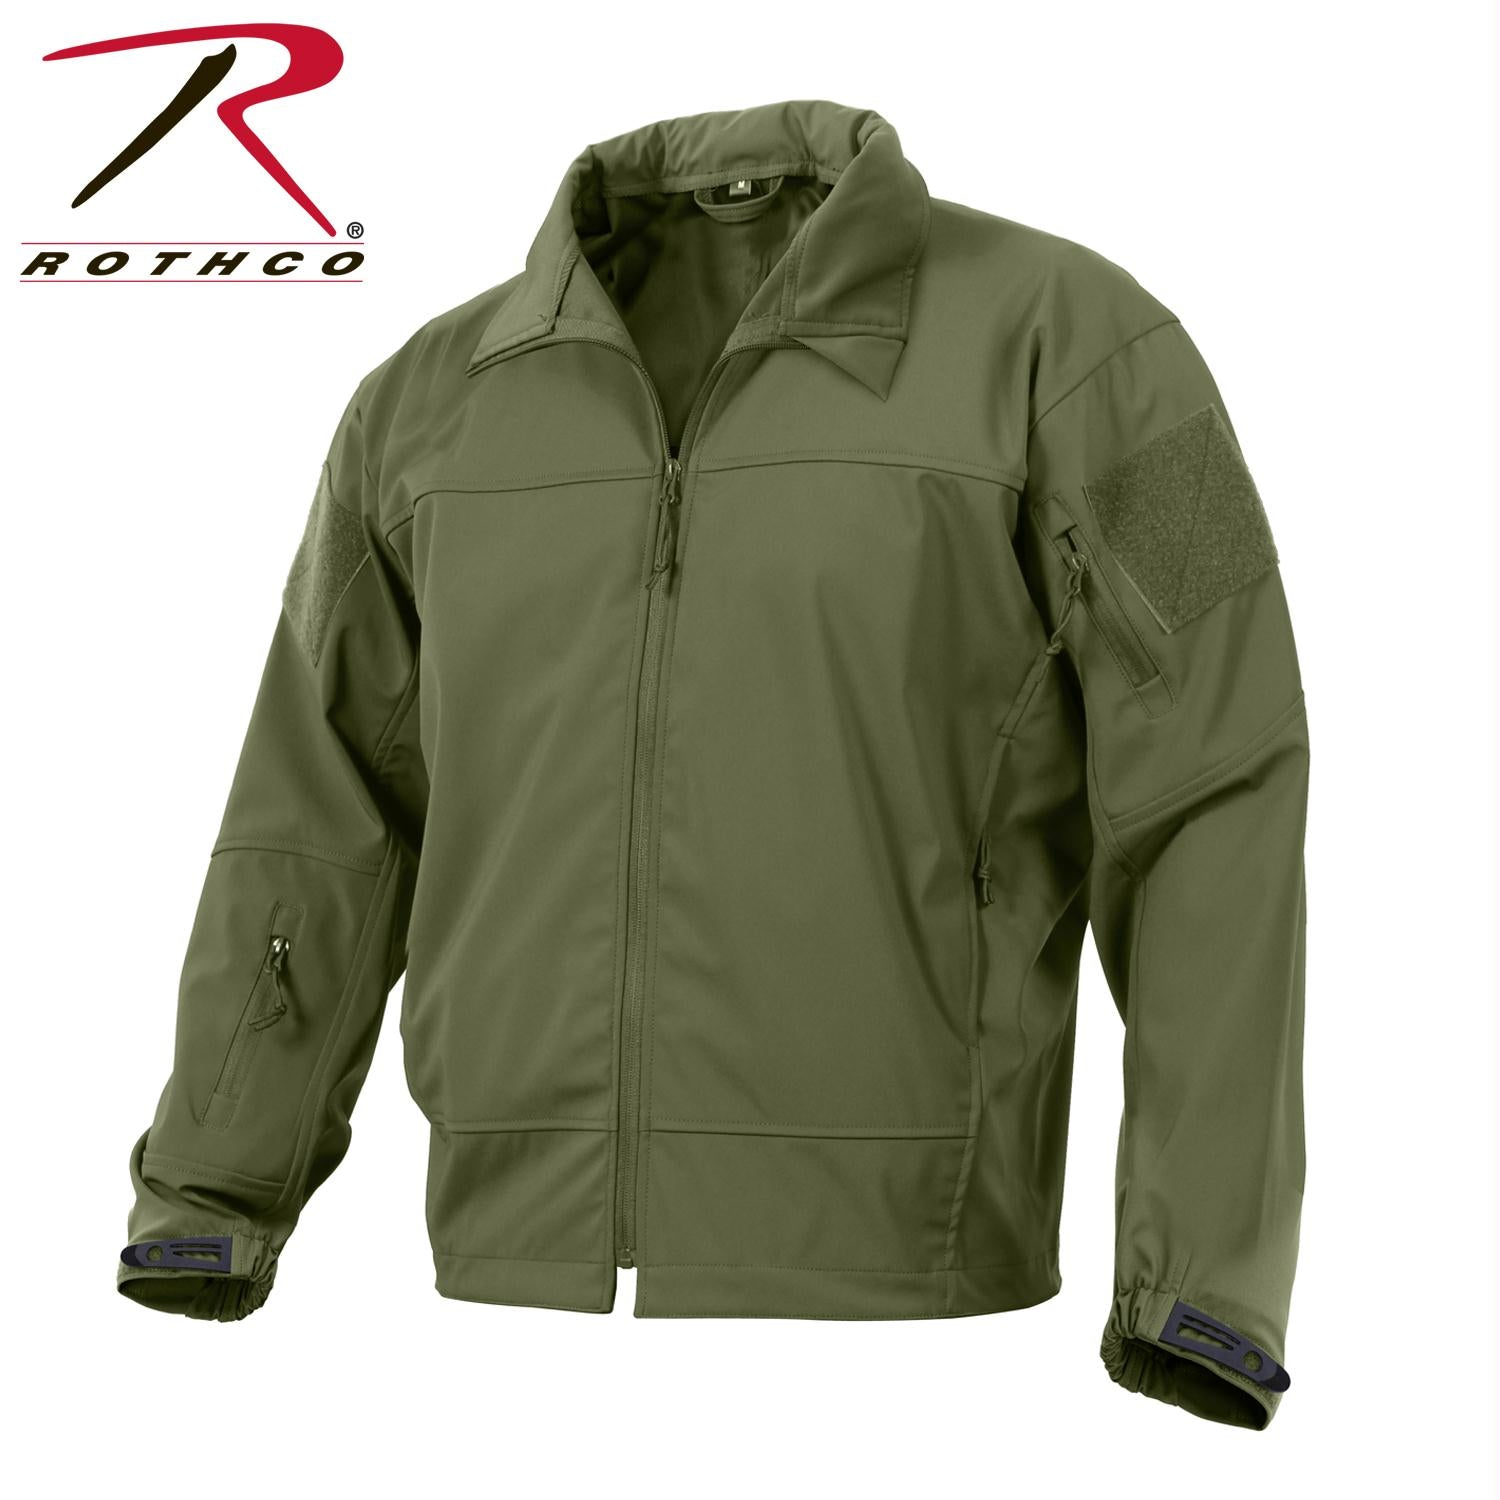 Rothco Covert Ops Light Weight Soft Shell Jacket - Olive Drab / XL